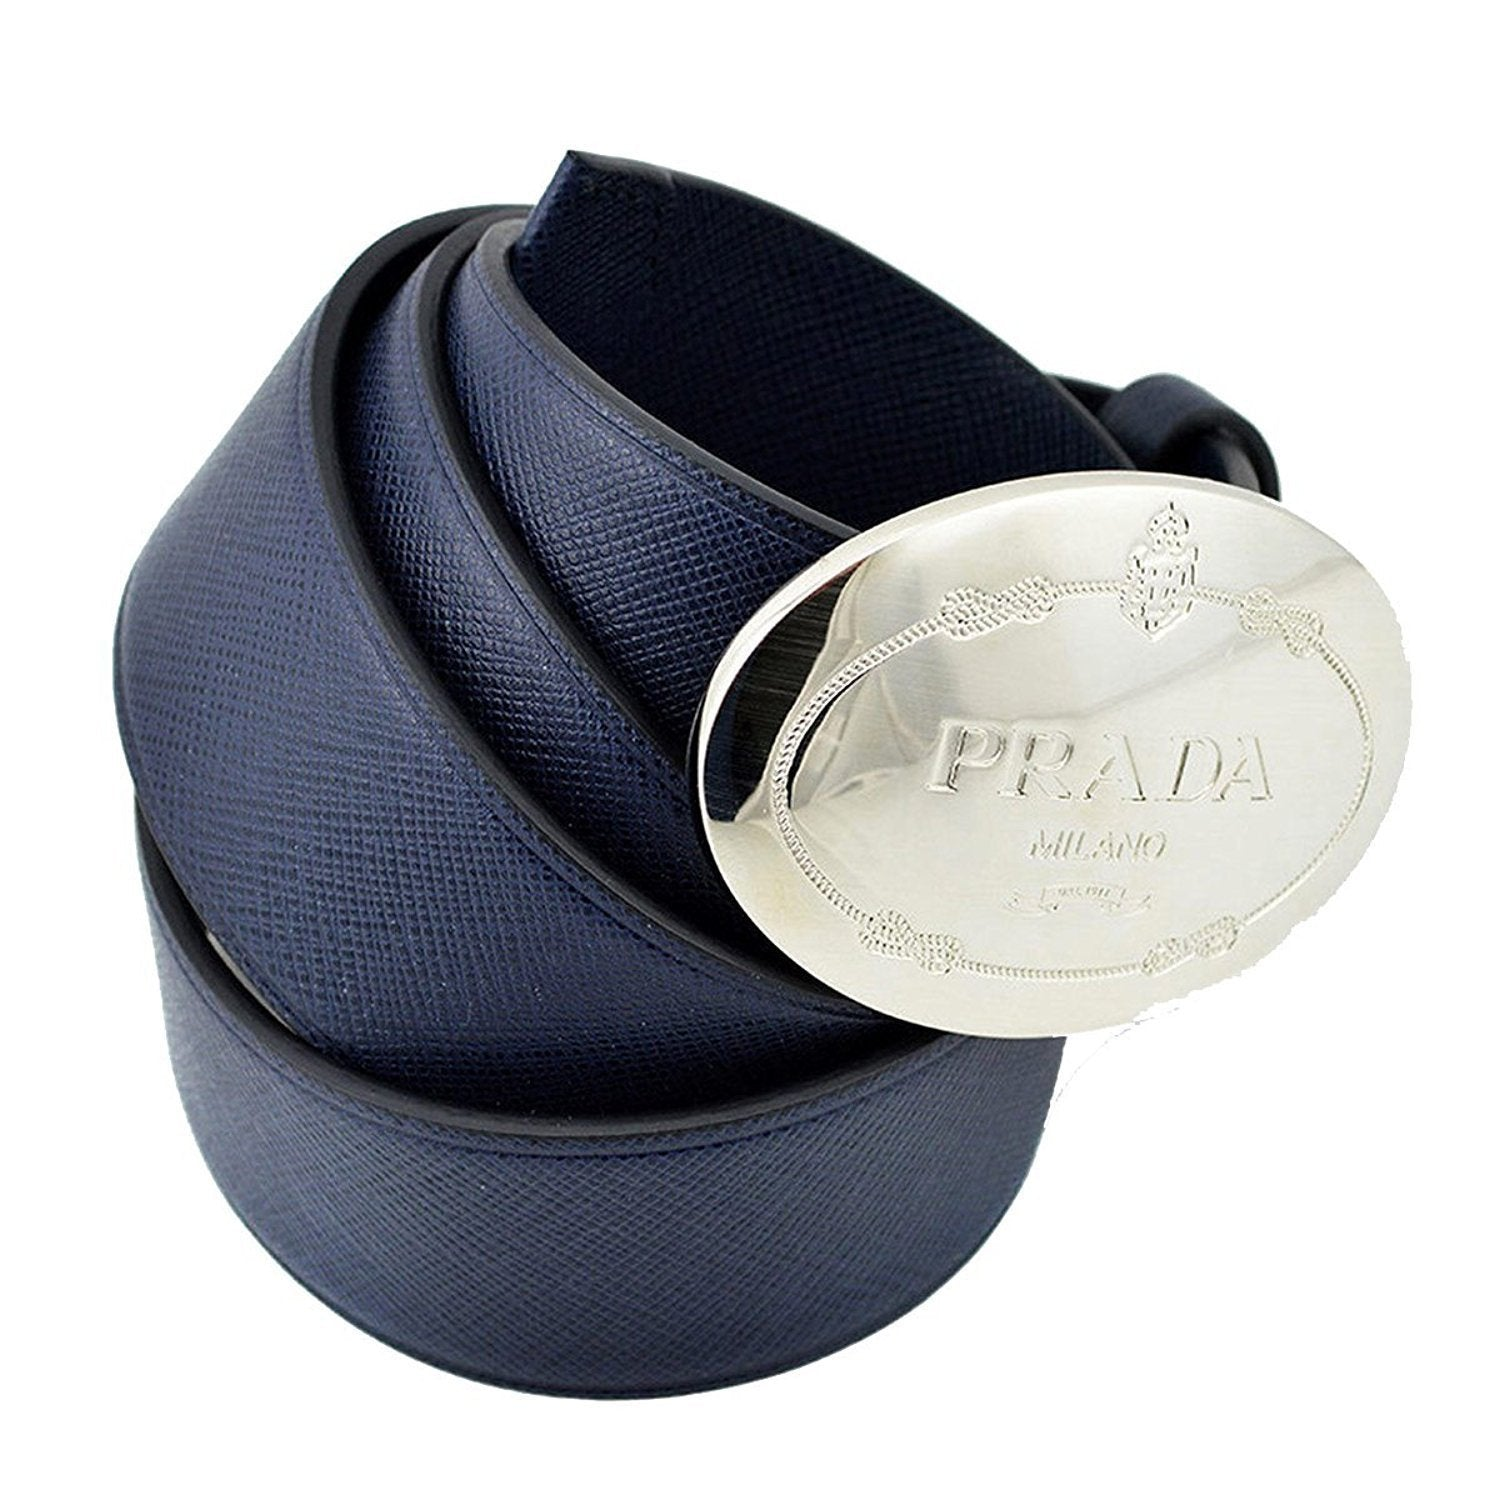 Prada Navy Blue Saffiano Leather Belt Silver Belt Buckle 2CM046 Size 100 / 40